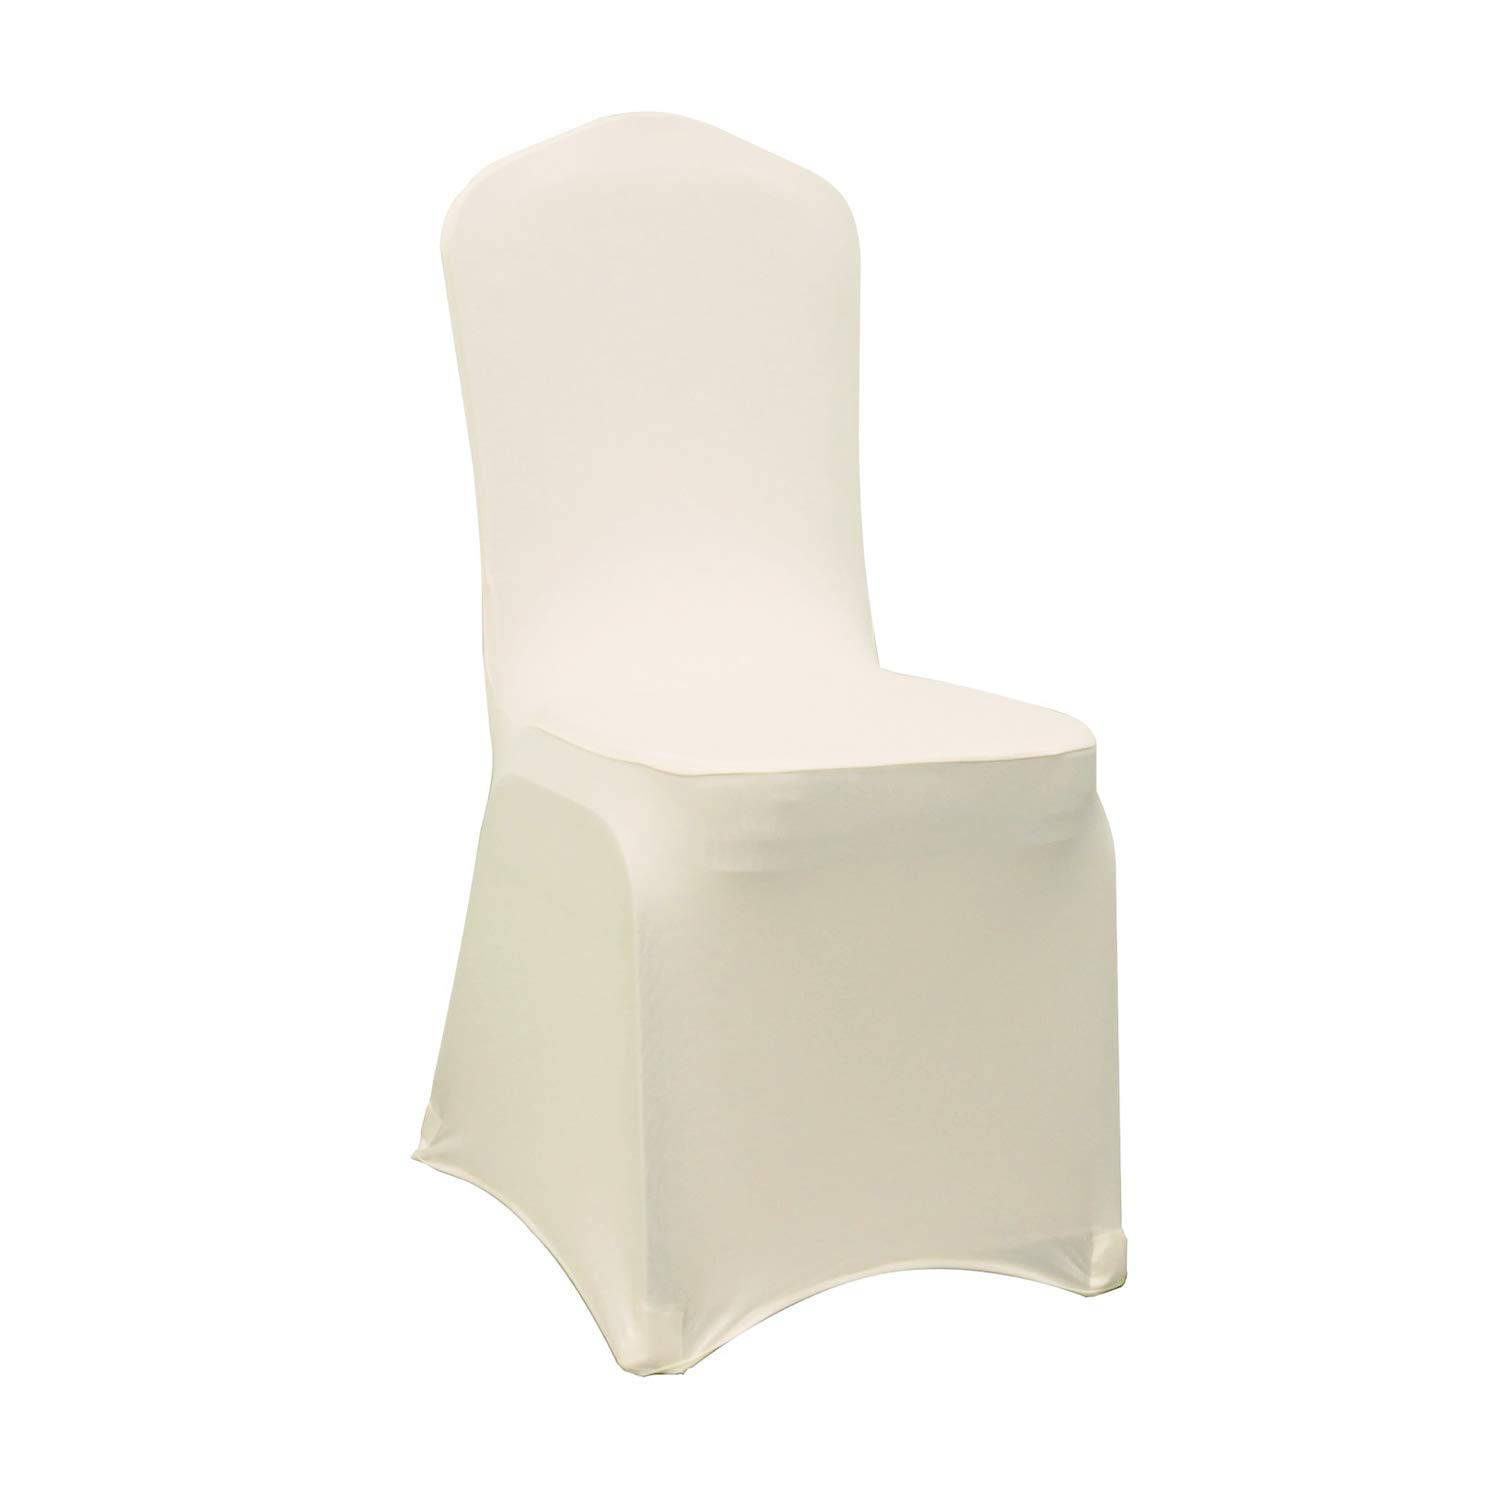 Ivory Stretch Spandex Chair Covers Wedding Universal - 10 Pcs Banquet Wedding Party Dining Decoration Scuba Elastic Chair Cover (Ivory, 10)